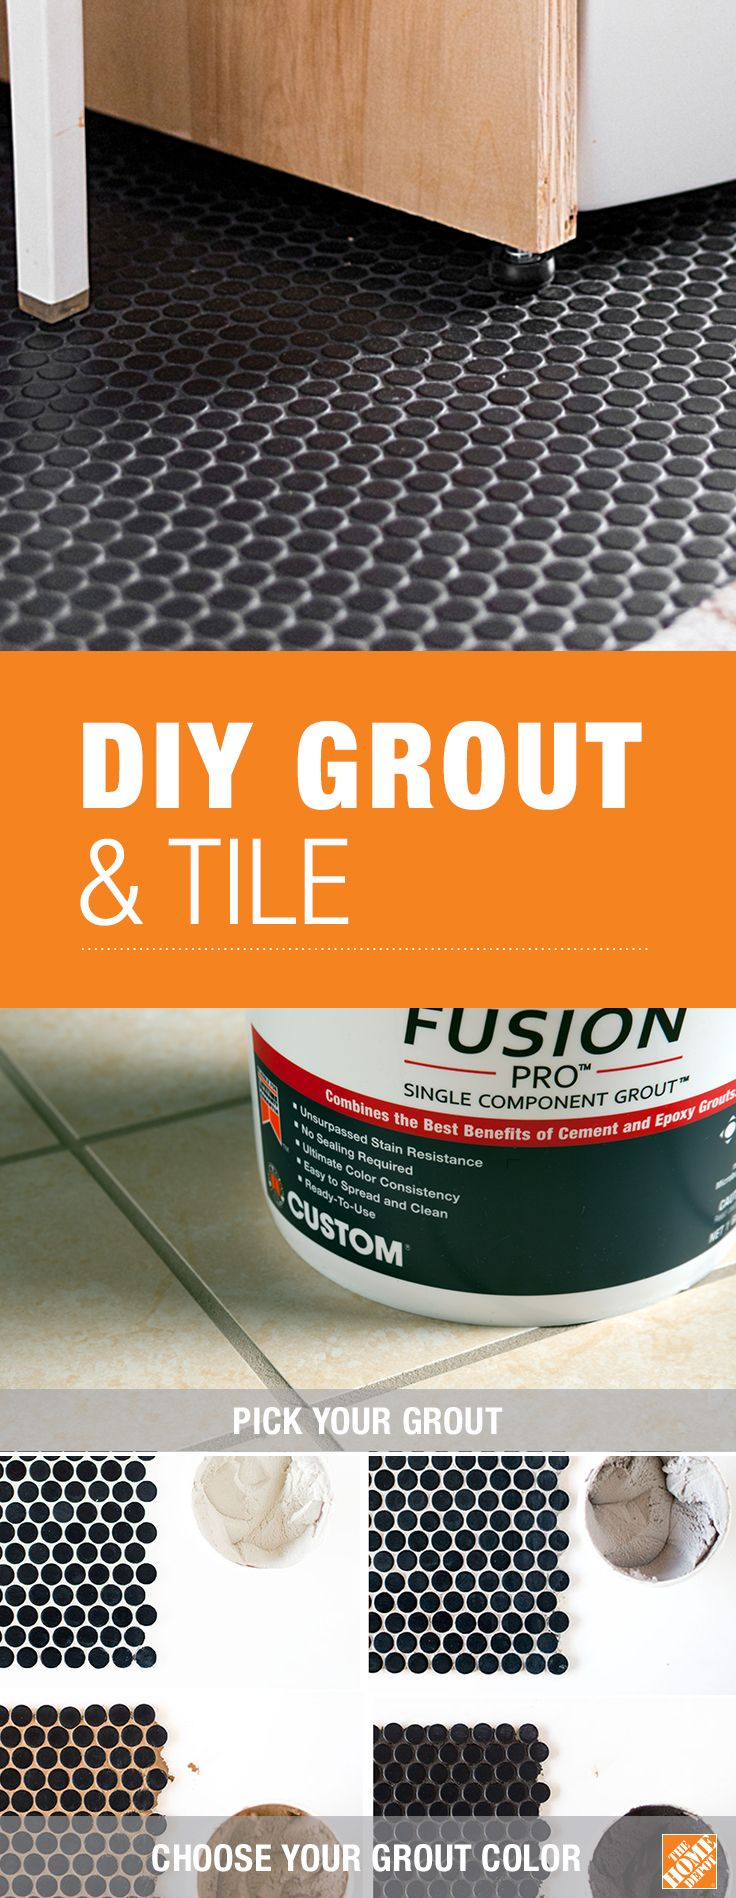 outlet store online shopping college gear Customize the look of your next DIY tile project with stain proof Fusion Pro